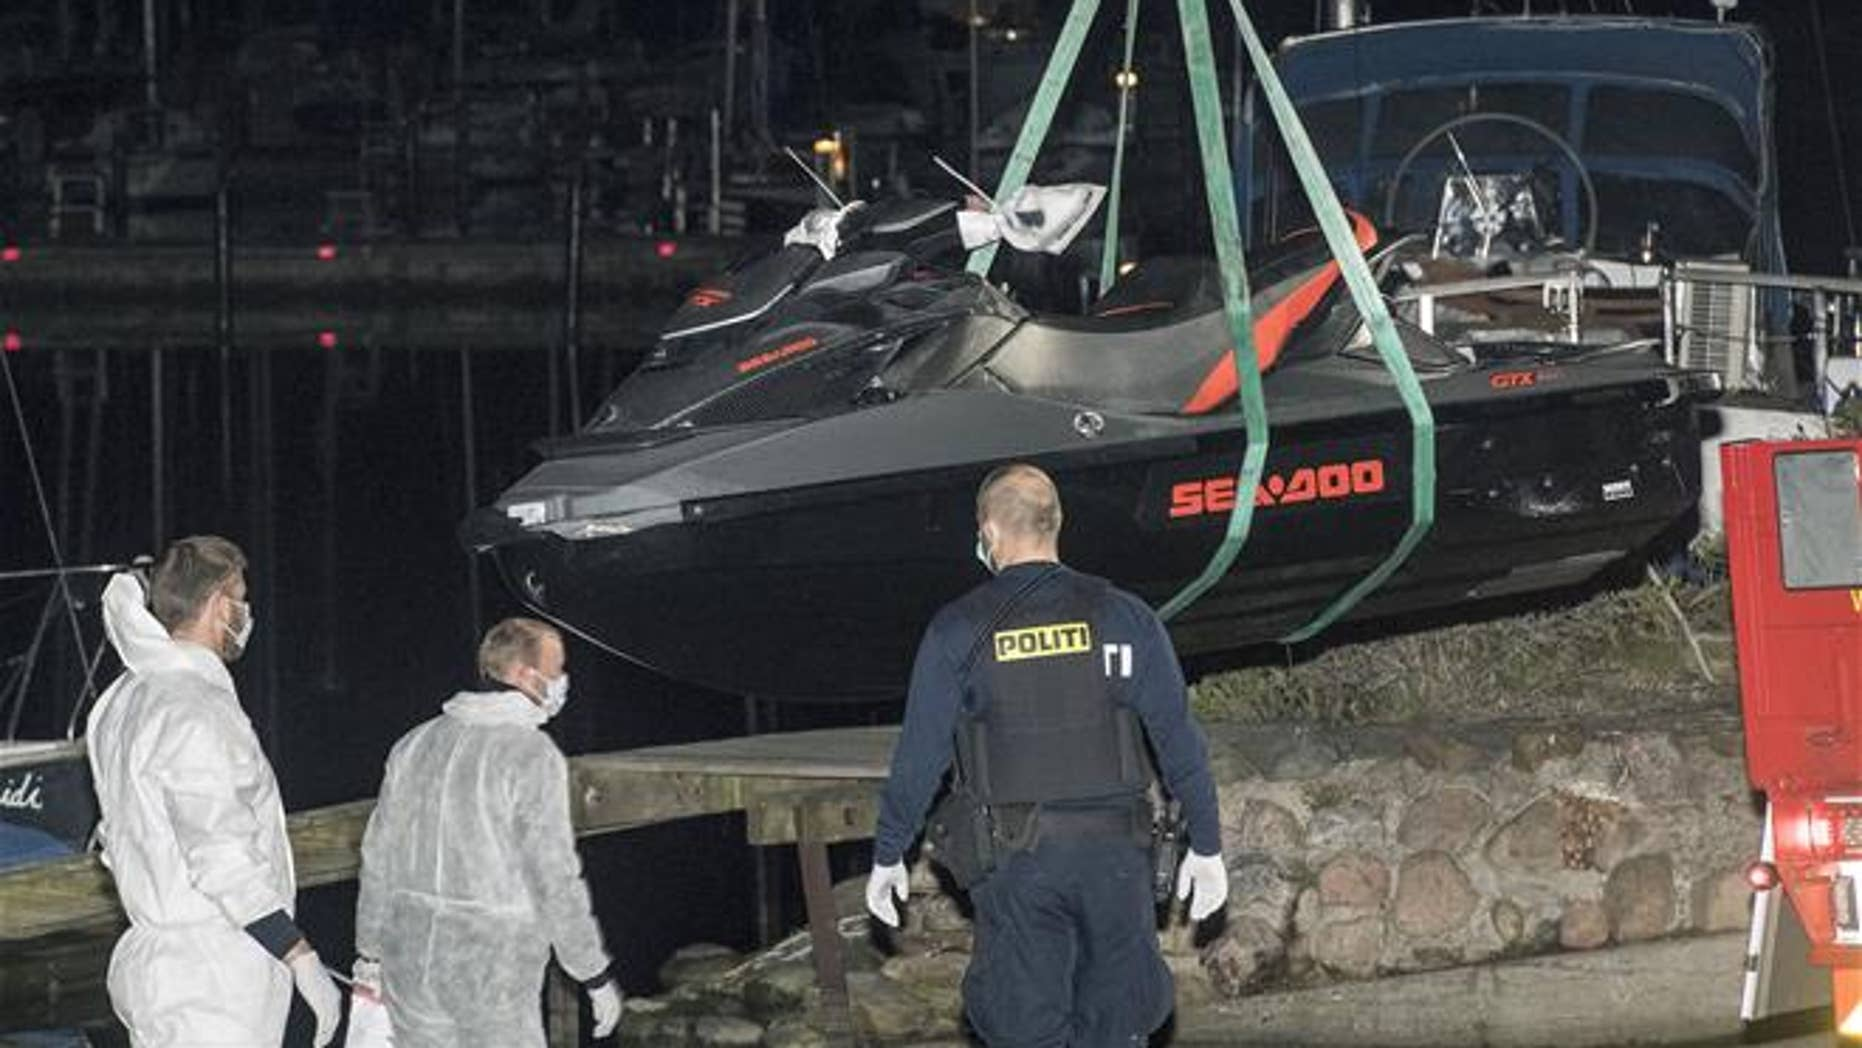 Emergency services at the scene of a jet ski accident near Copenhagen, Denmark, on May 6, 2017.